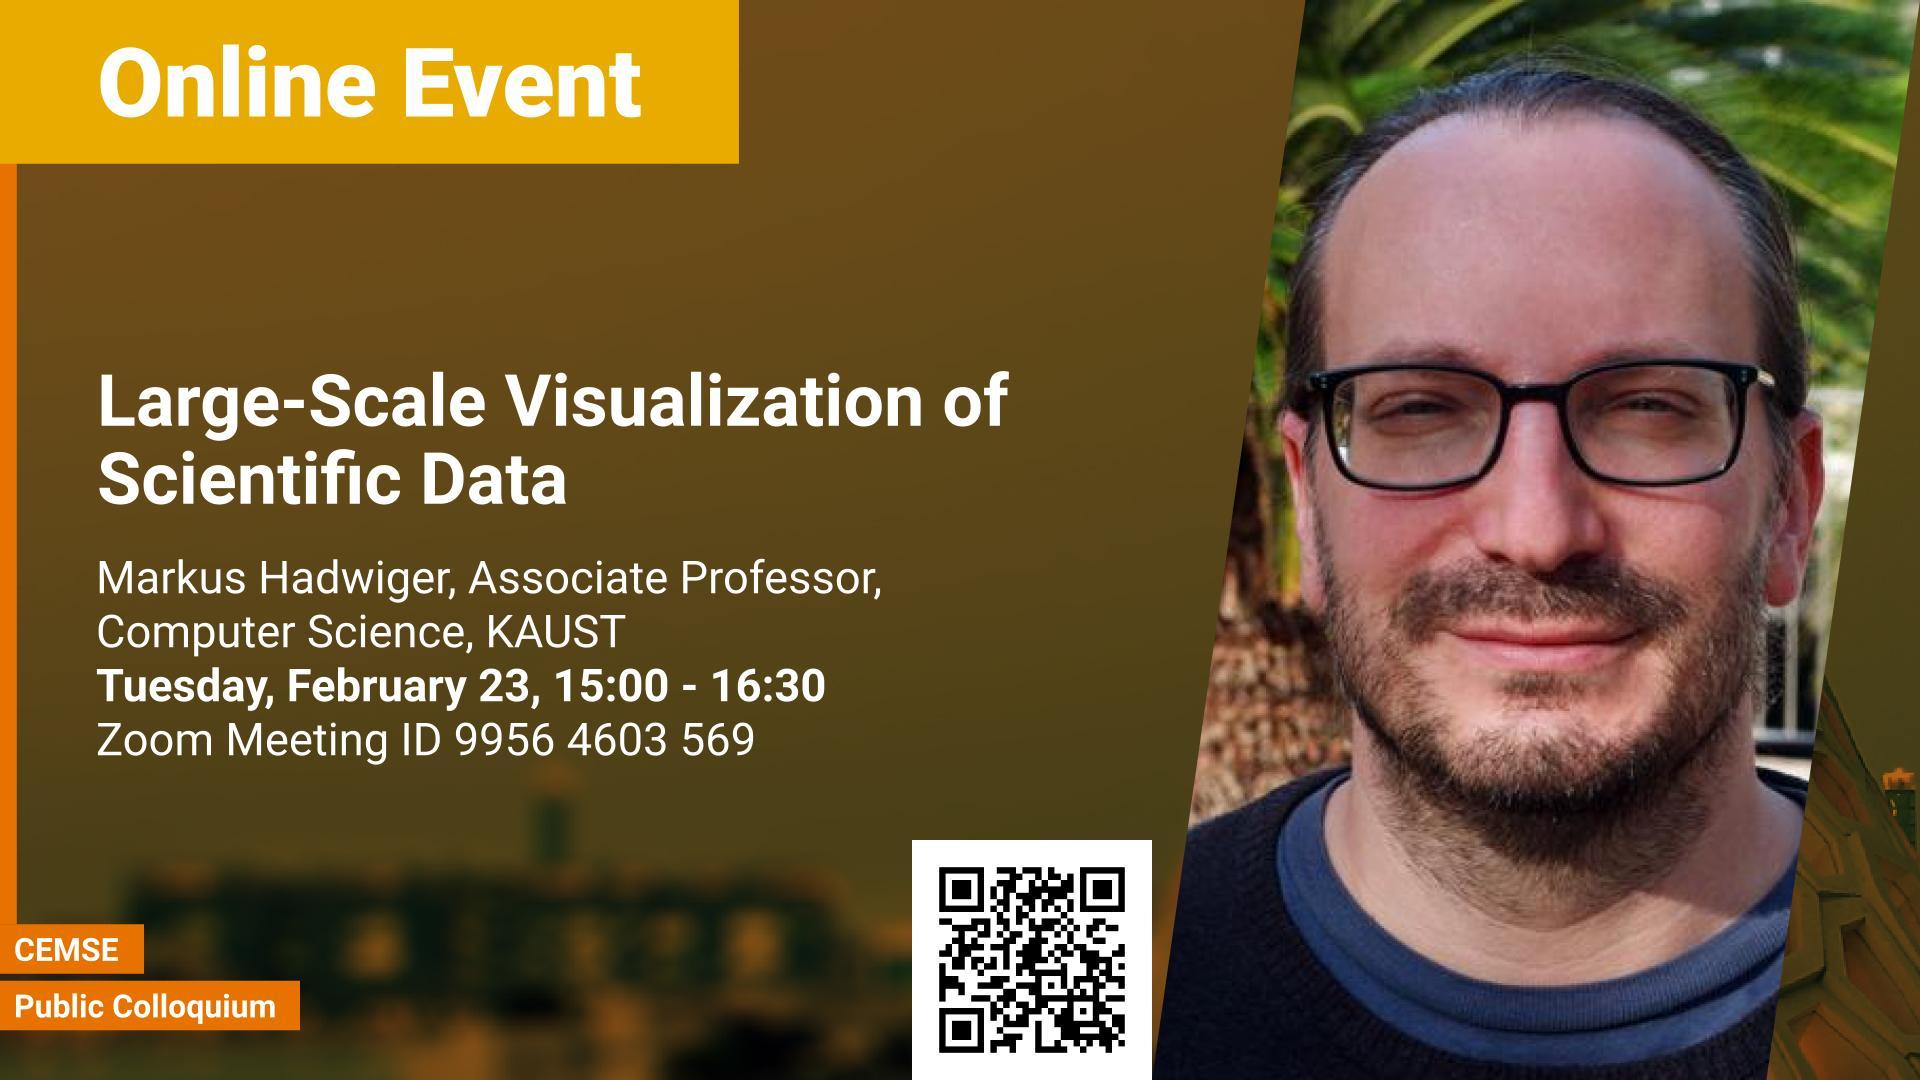 KAUST CEMSE CS public colloquium Markus Hadwiger Large-Scale Visualization of Science Data